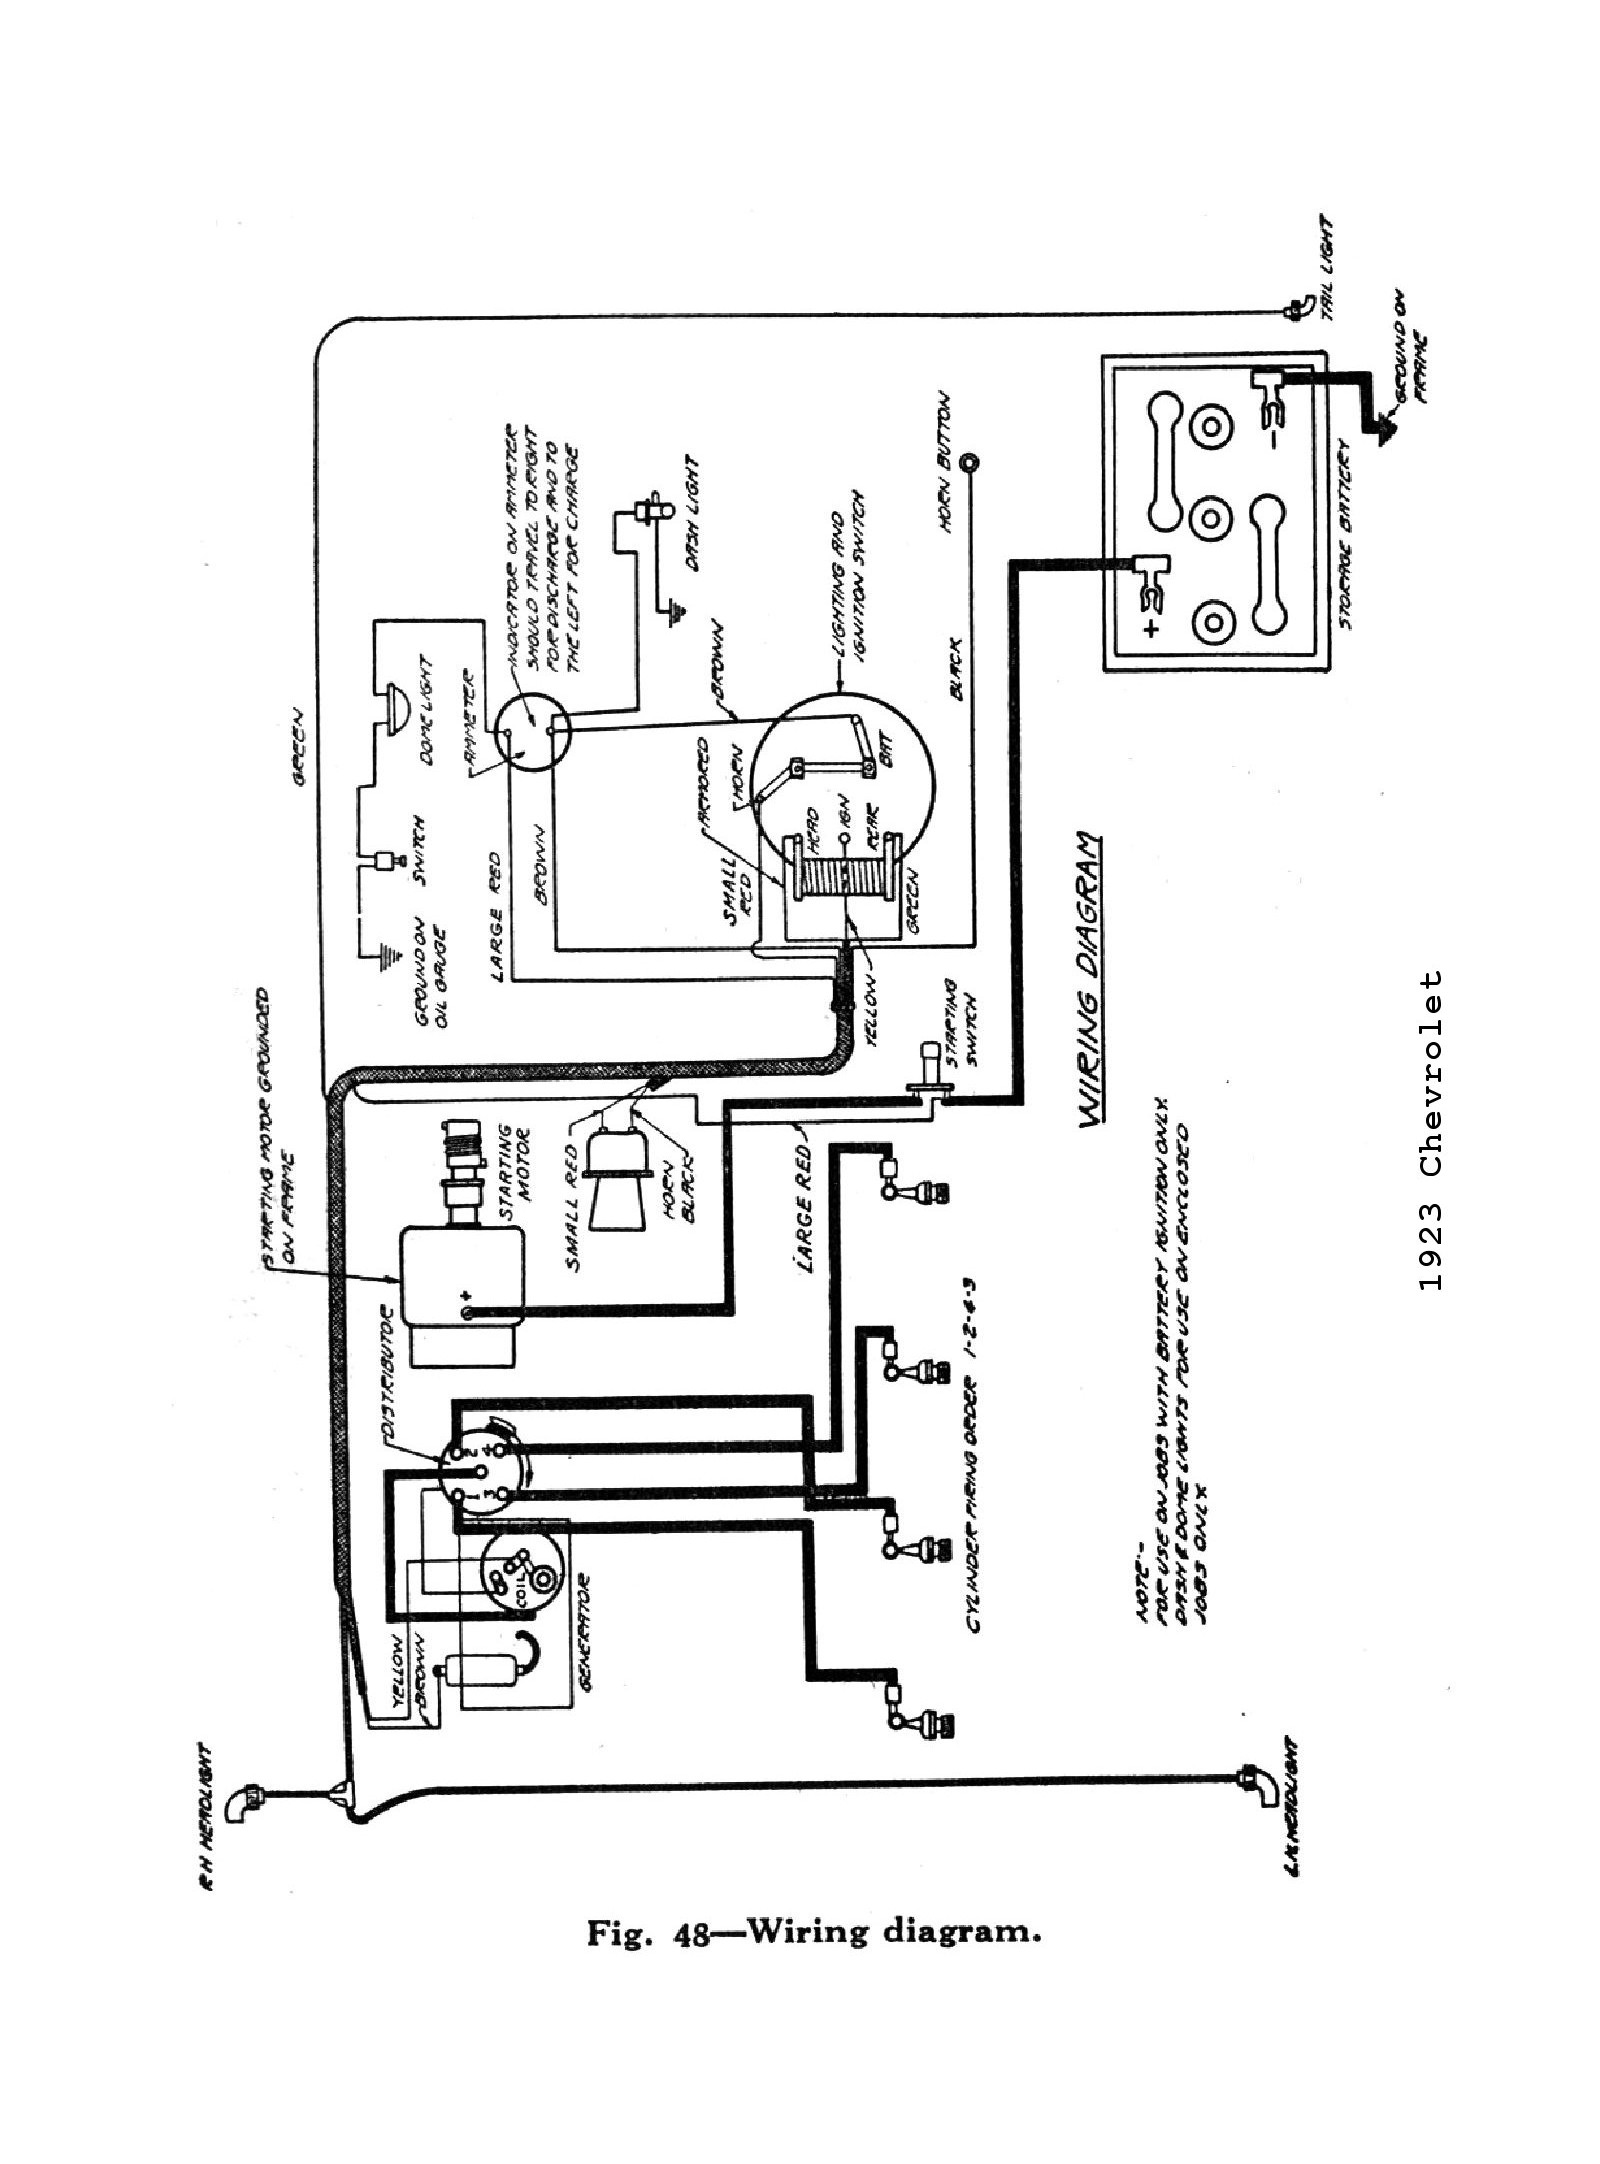 1931 Chevrolet Wiring Diagram